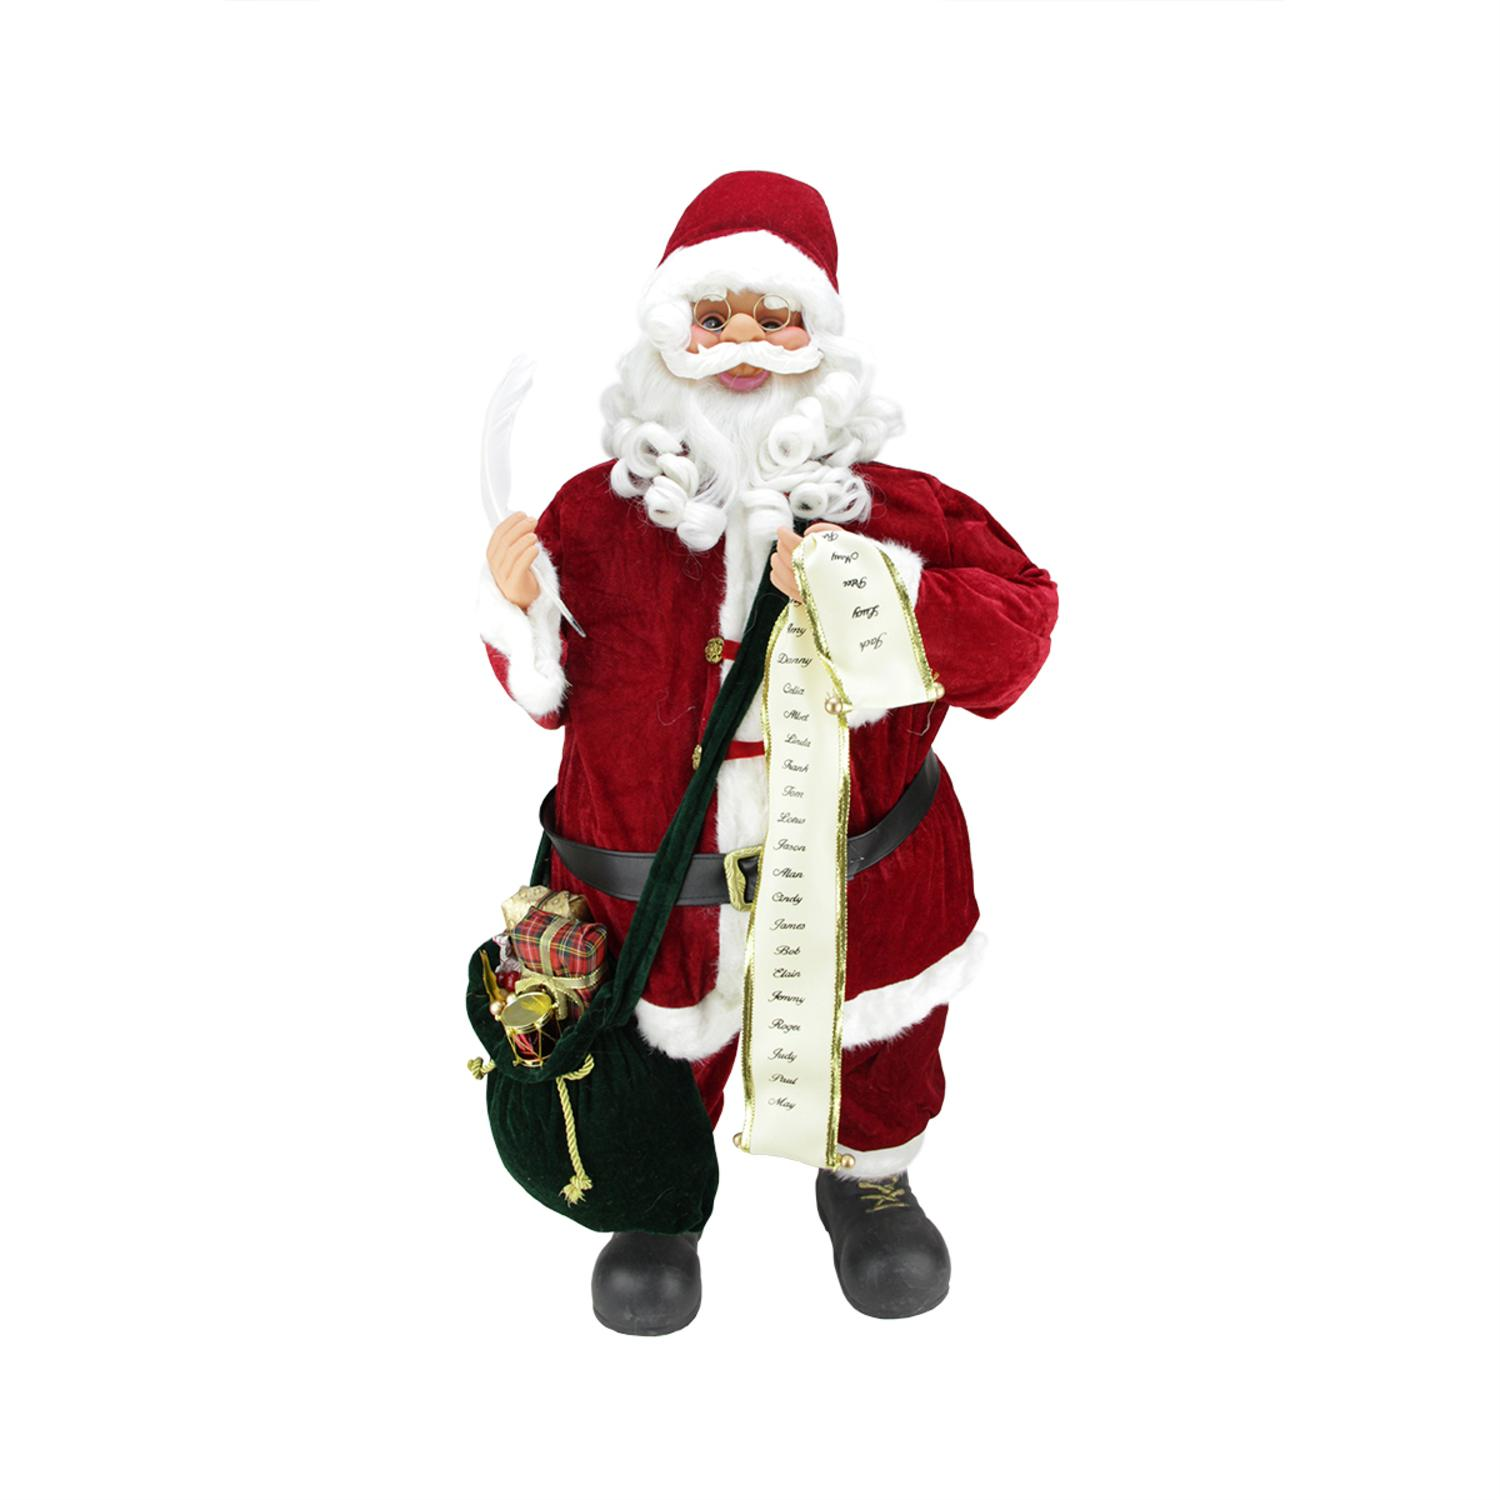 ''32'''' Animated and Musical Battery Operated Standing Santa Claus Christmas Figure with Nice List''